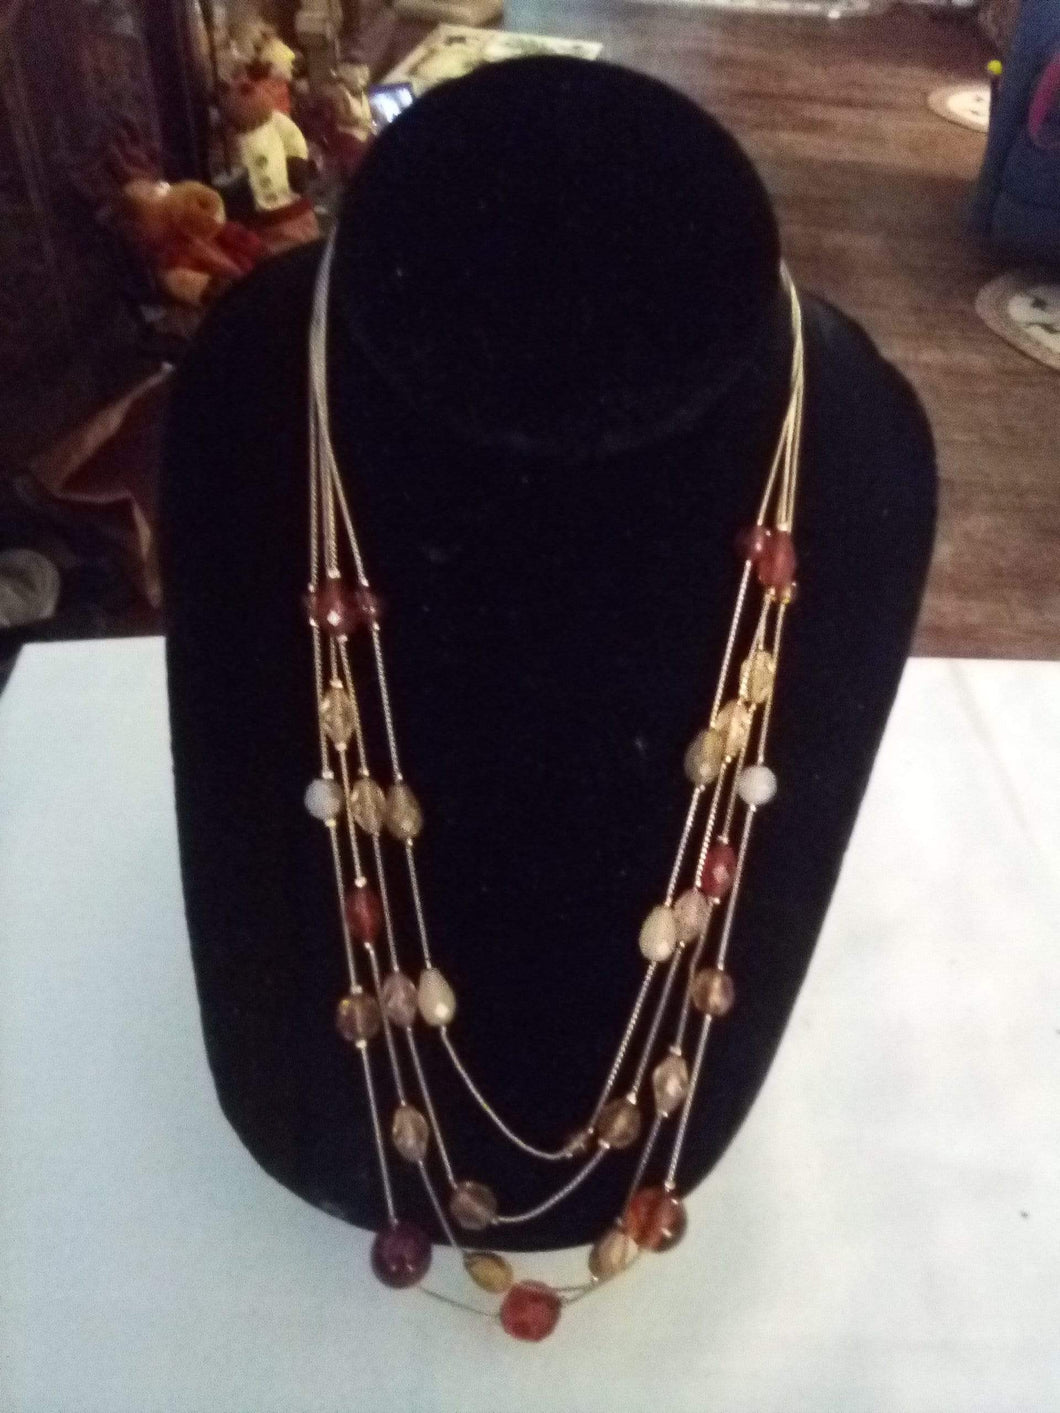 Attractive multi tier necklace - B&P'sringsnthings